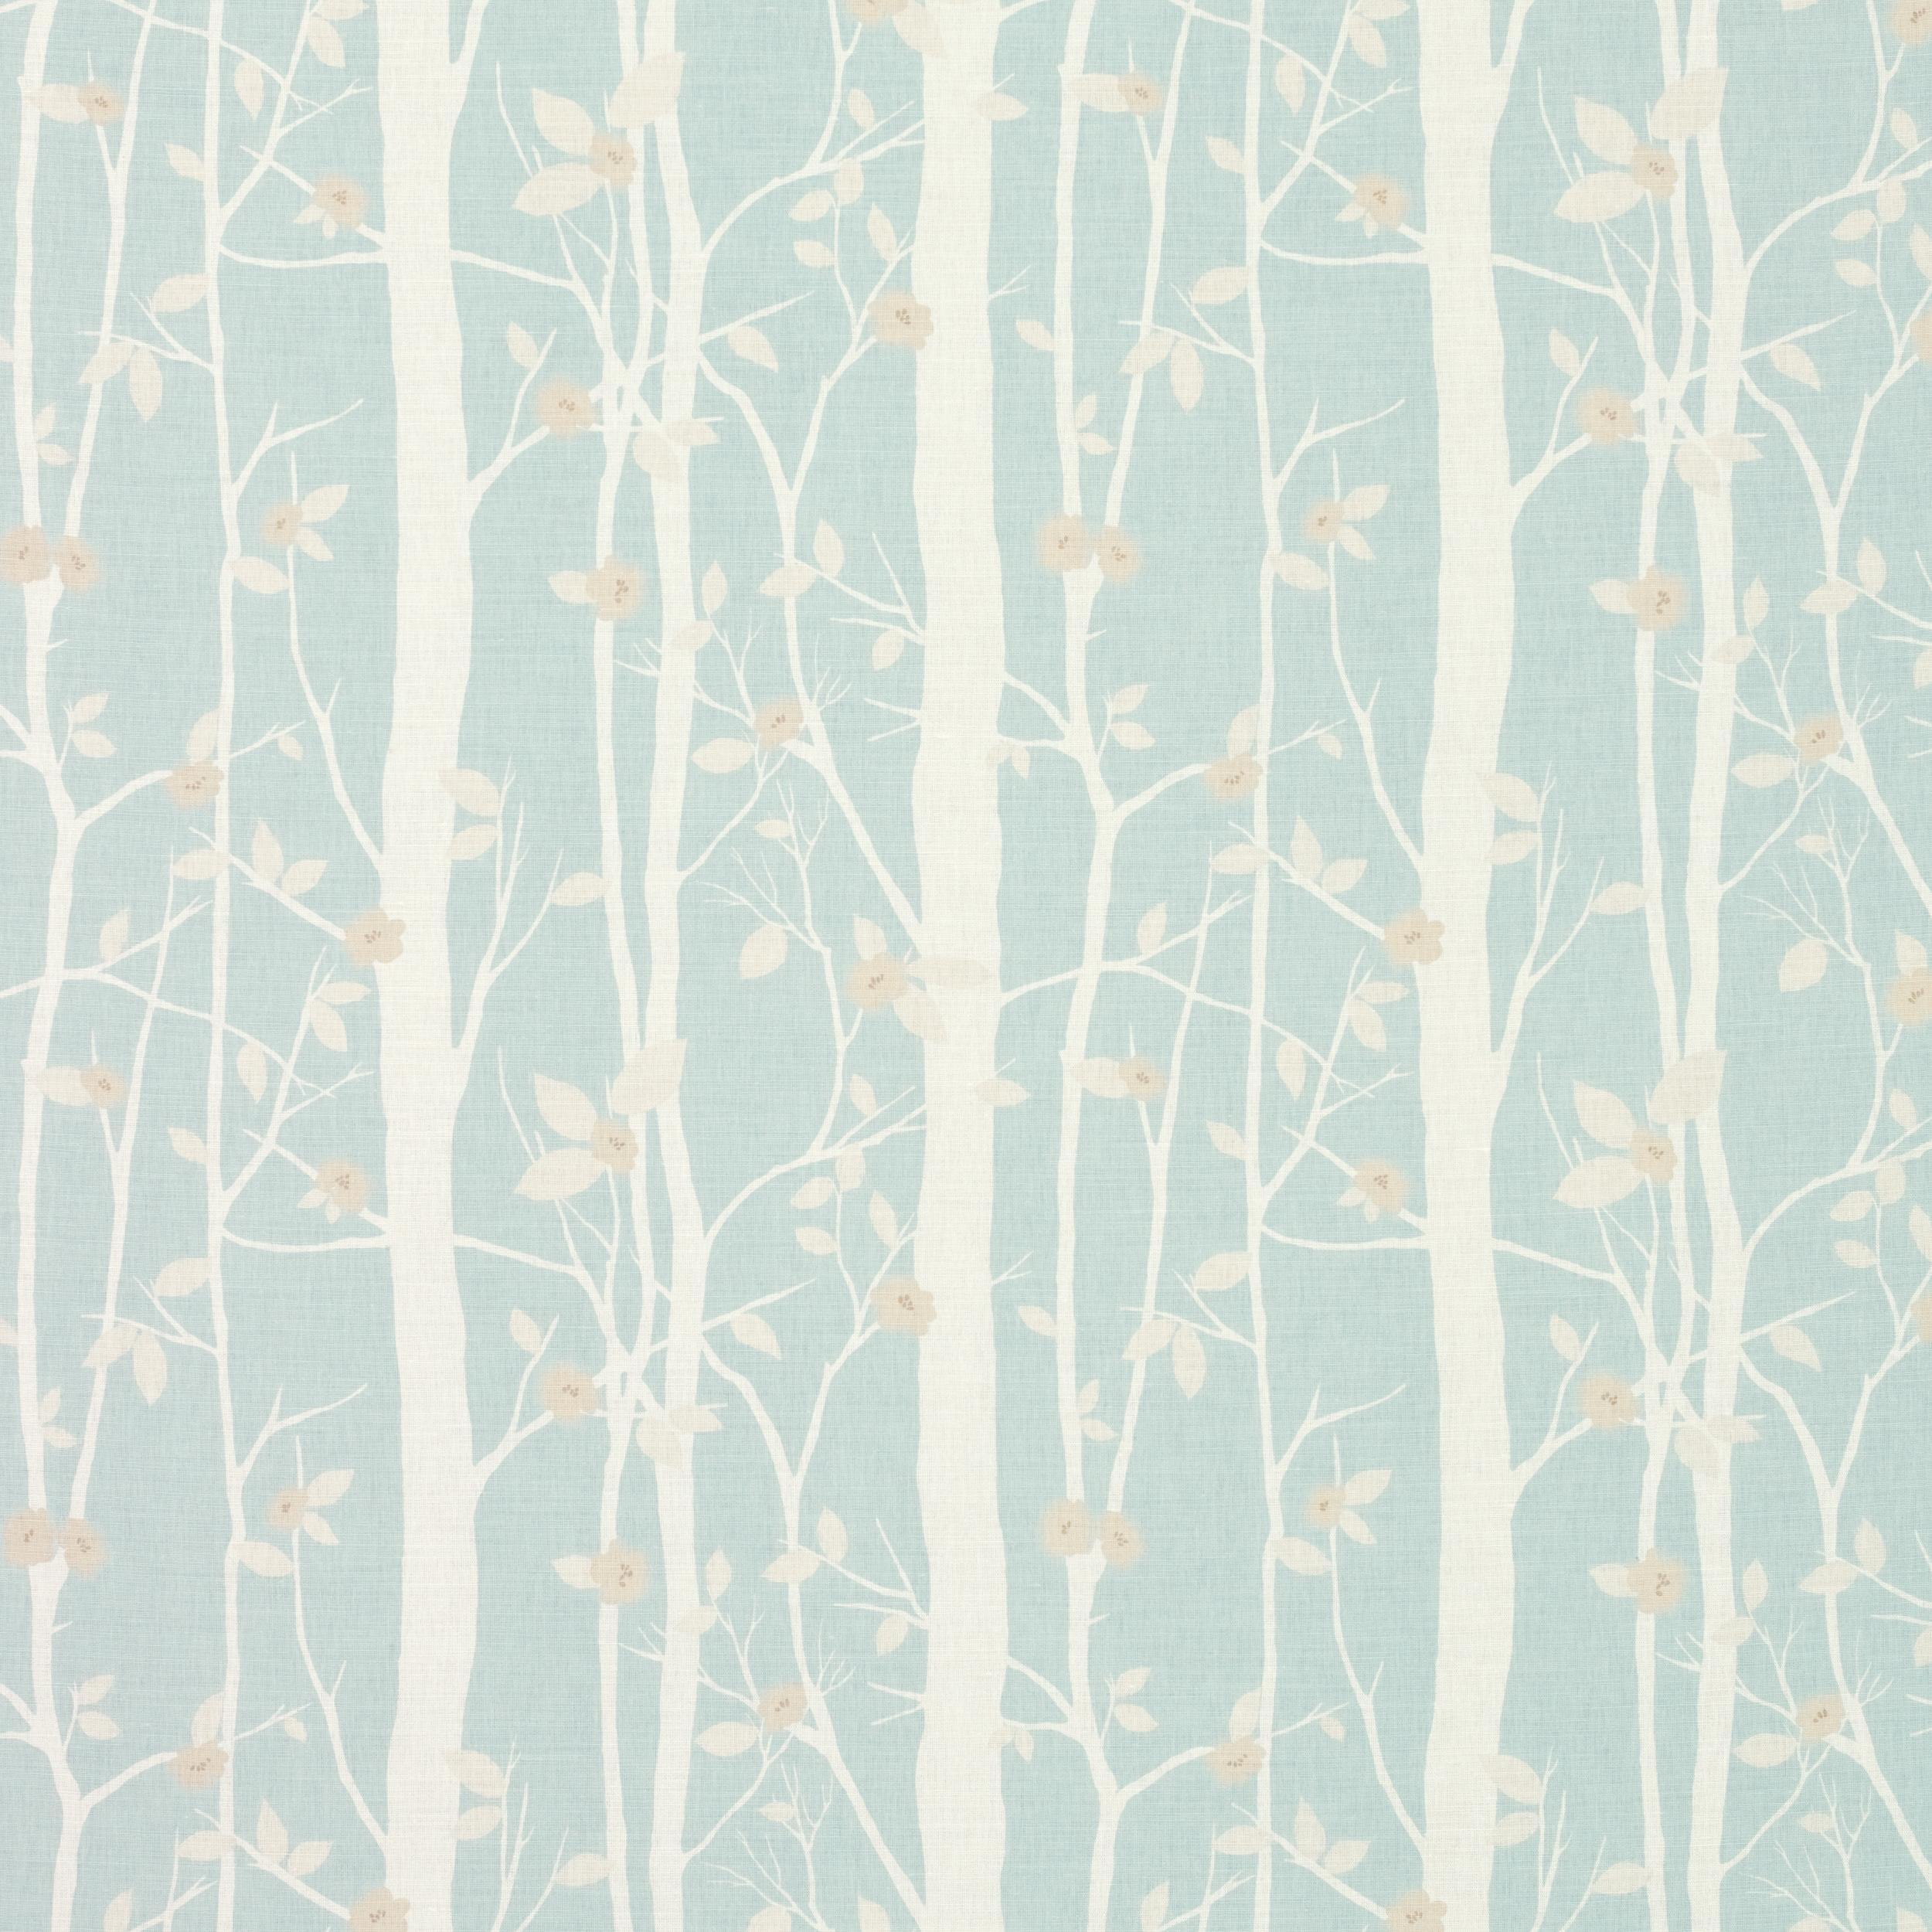 Cottonwood Natural Cottonlinen Curtain Curtain Fabric At Laura Ashley With Curtain Linen Fabric (Image 3 of 15)